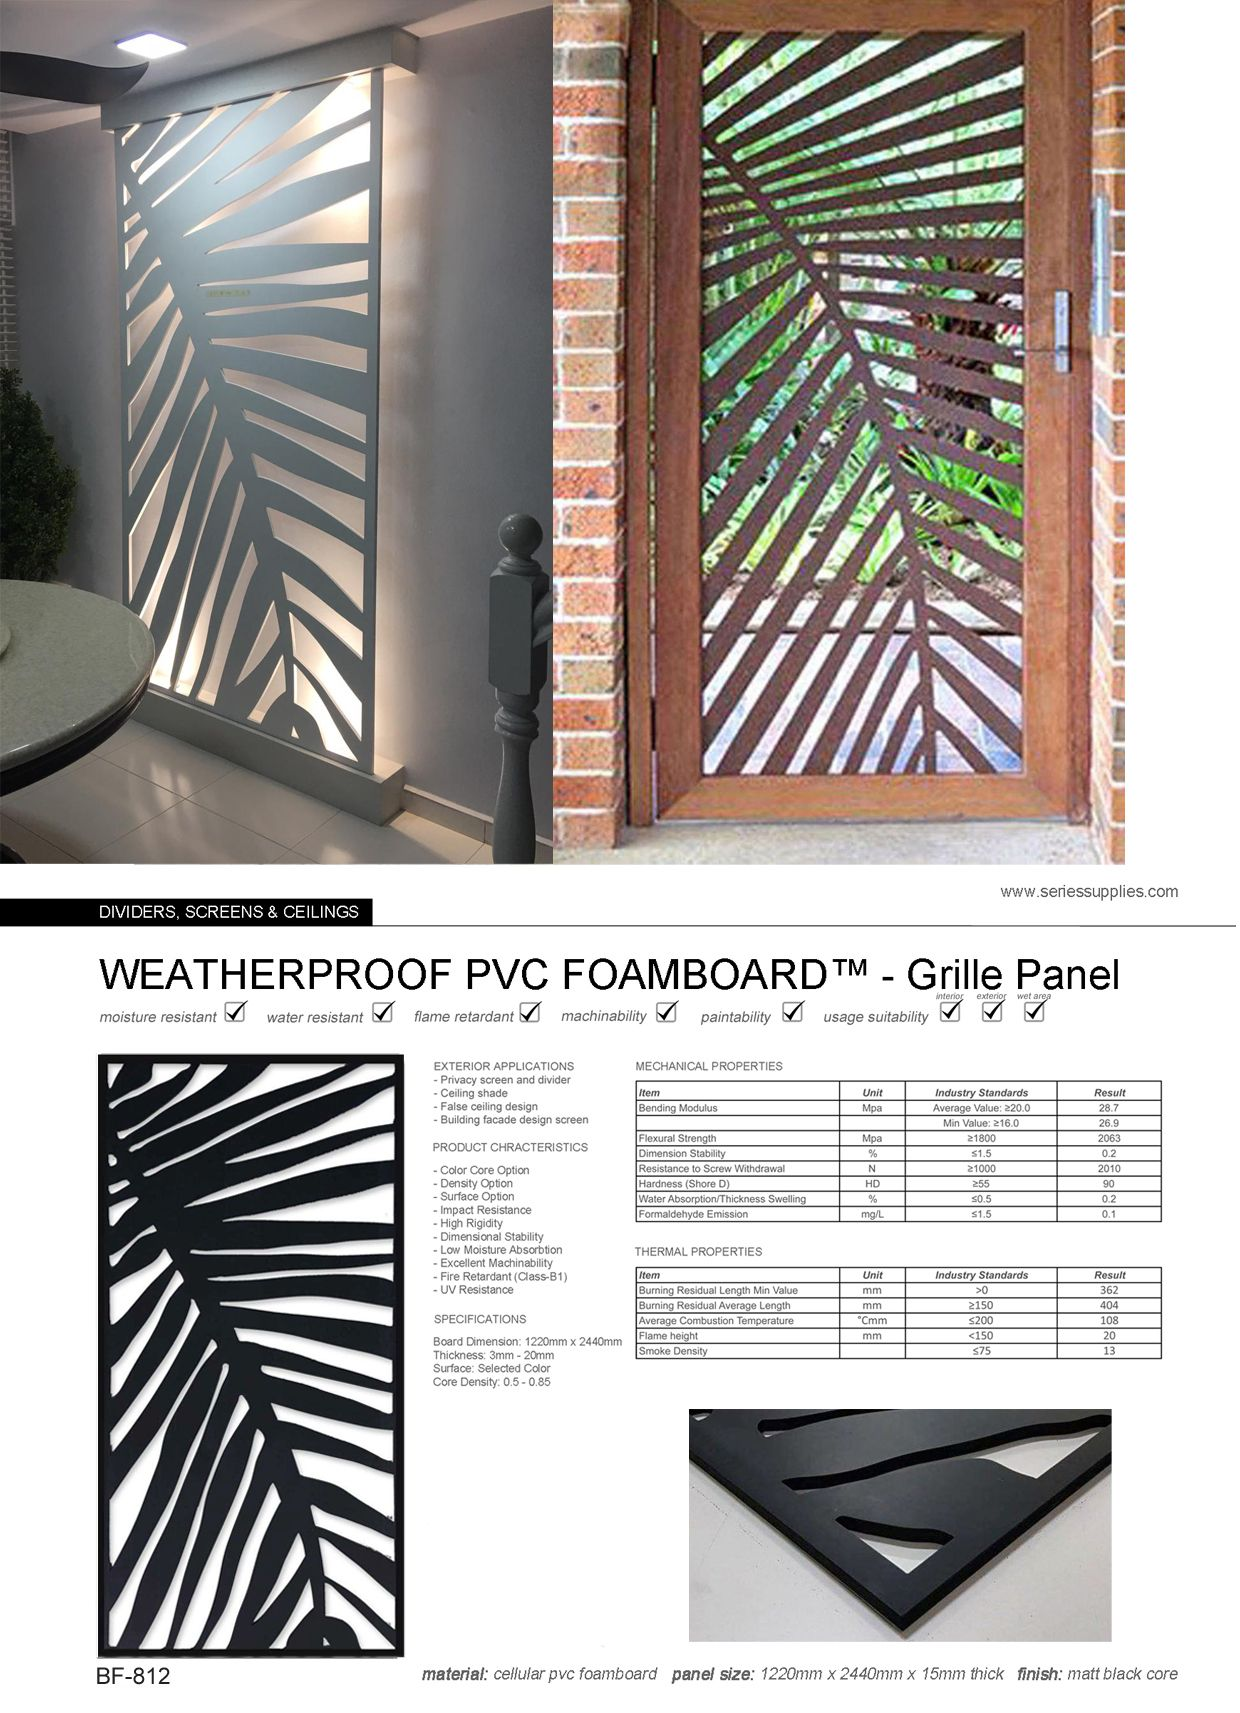 Outdoor Screen Door In 2020 Decorative Screen Panels Decorative Screens Divider Wall Paneling